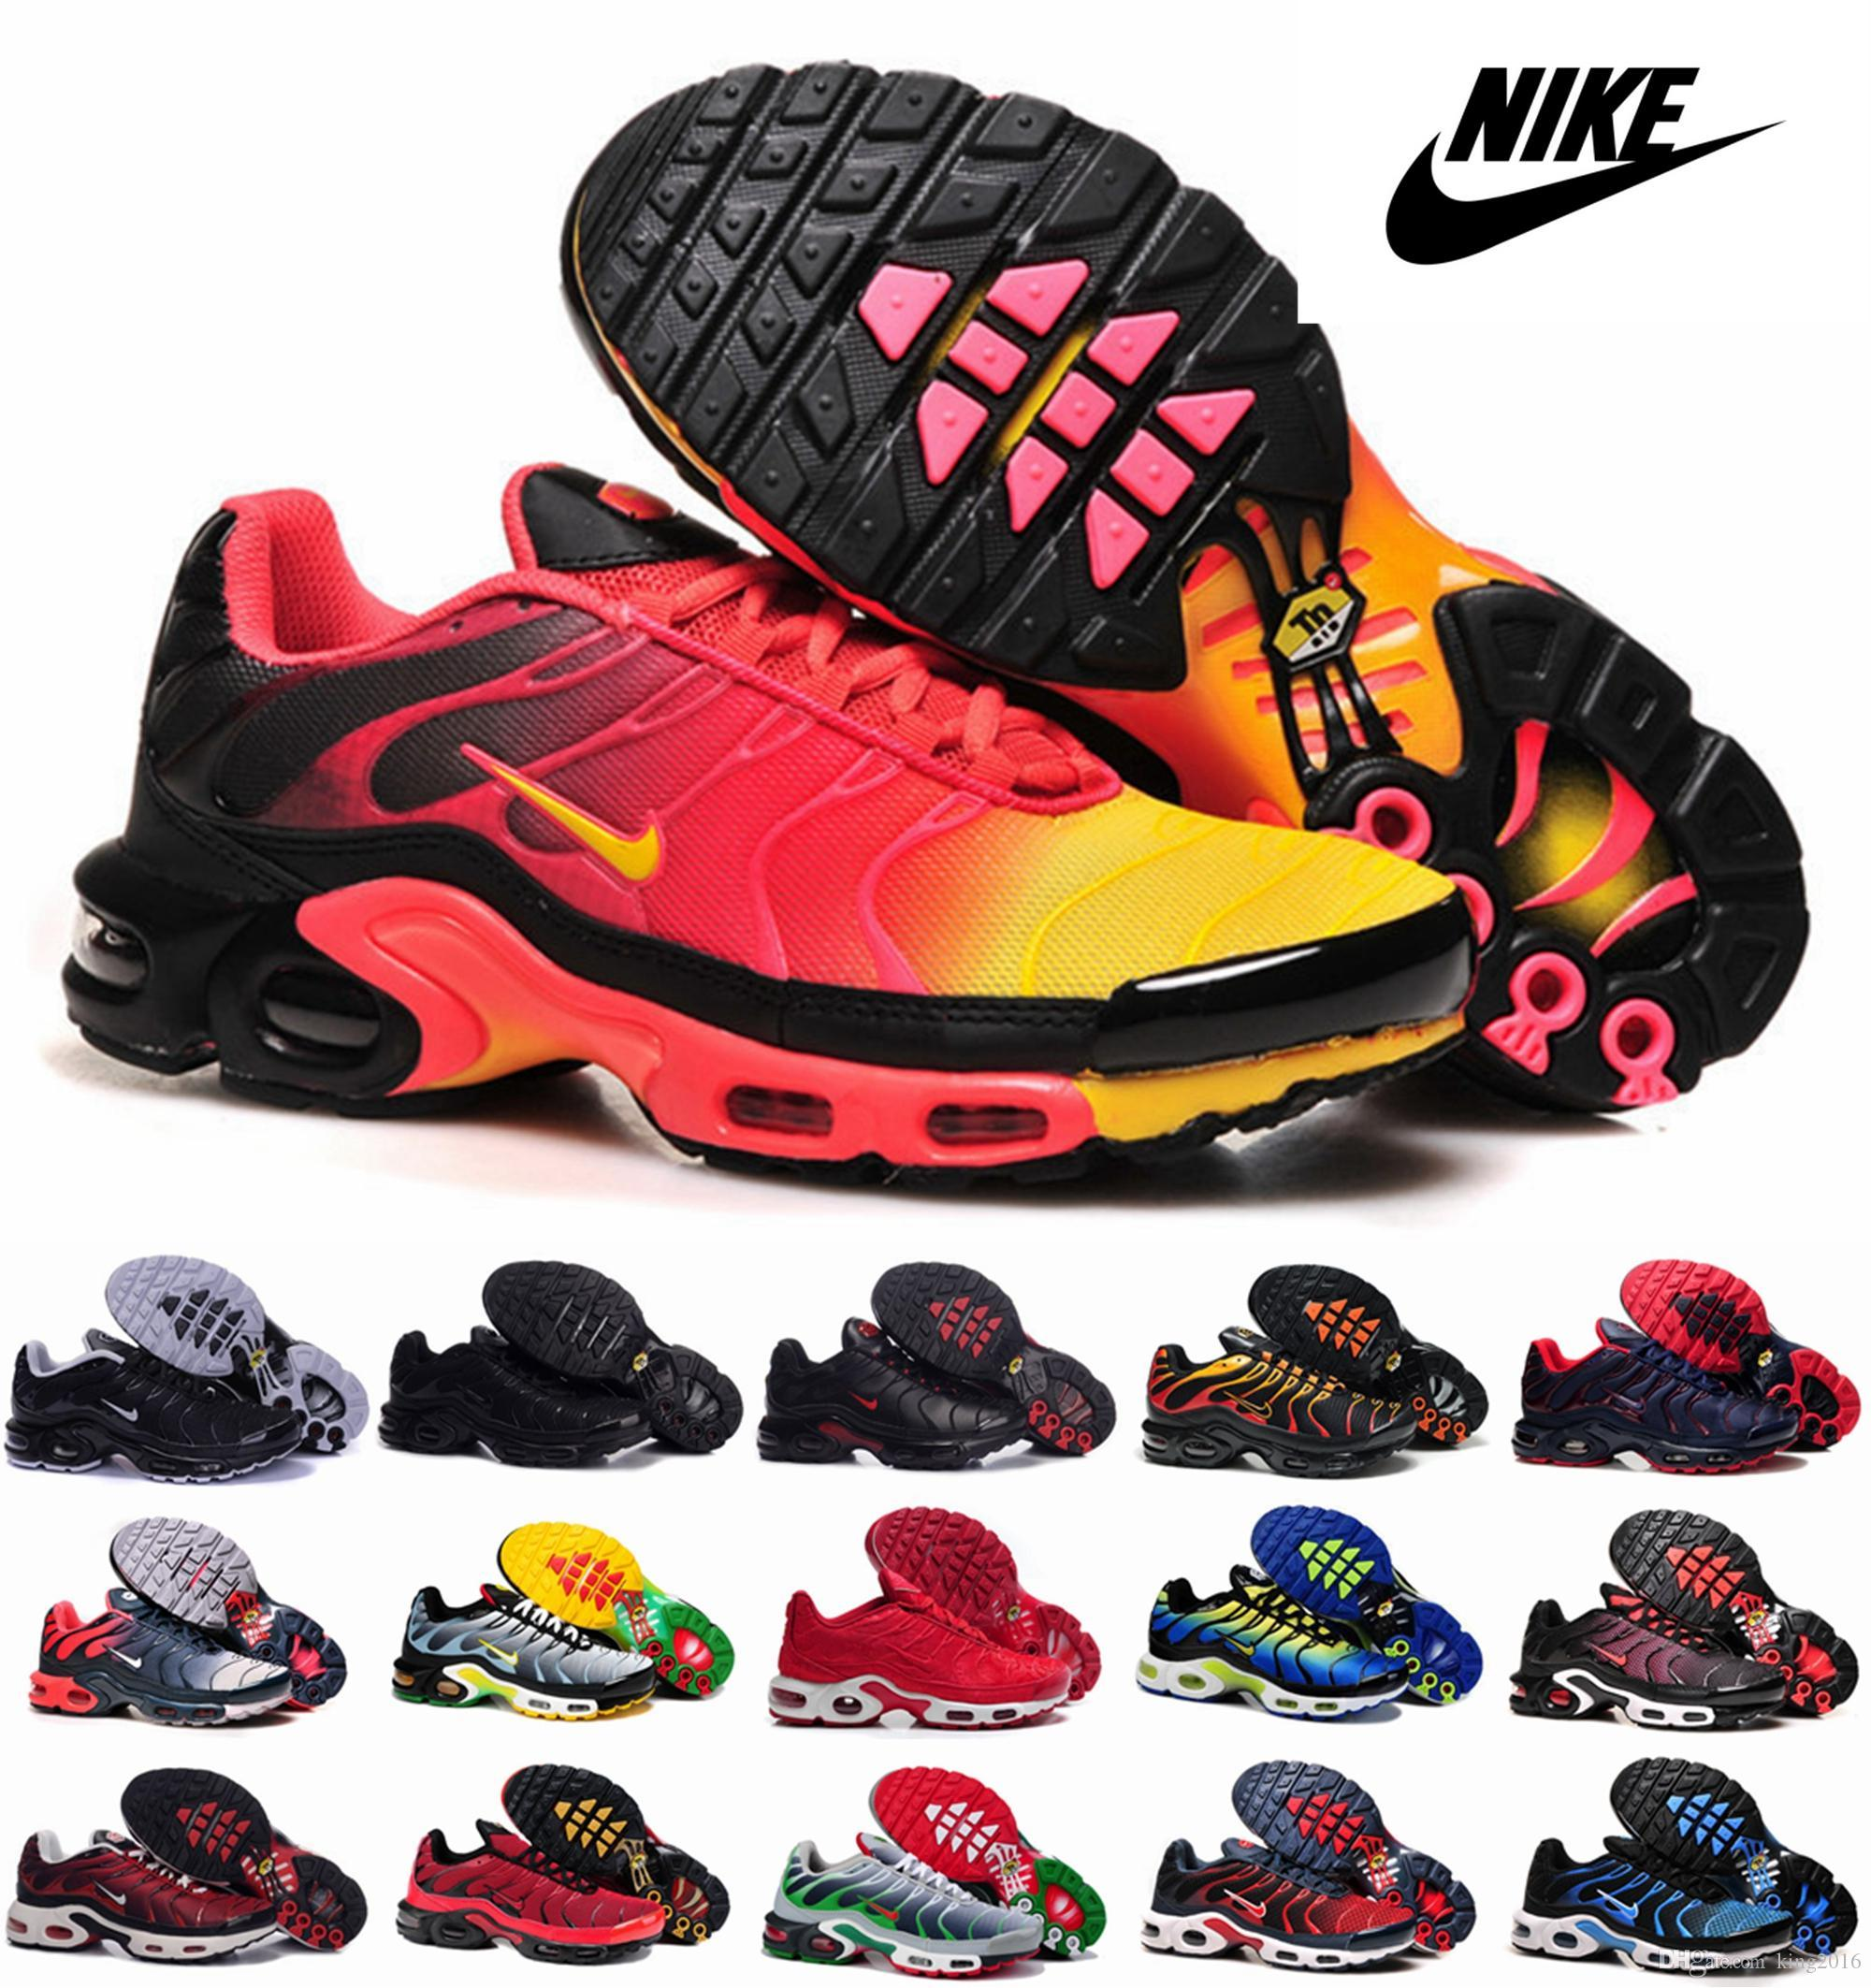 f05d9214e1a267 Nike Air Max 2015 Tn Men Running Shoes, Cheap 100% Original Cheap Good  Quality